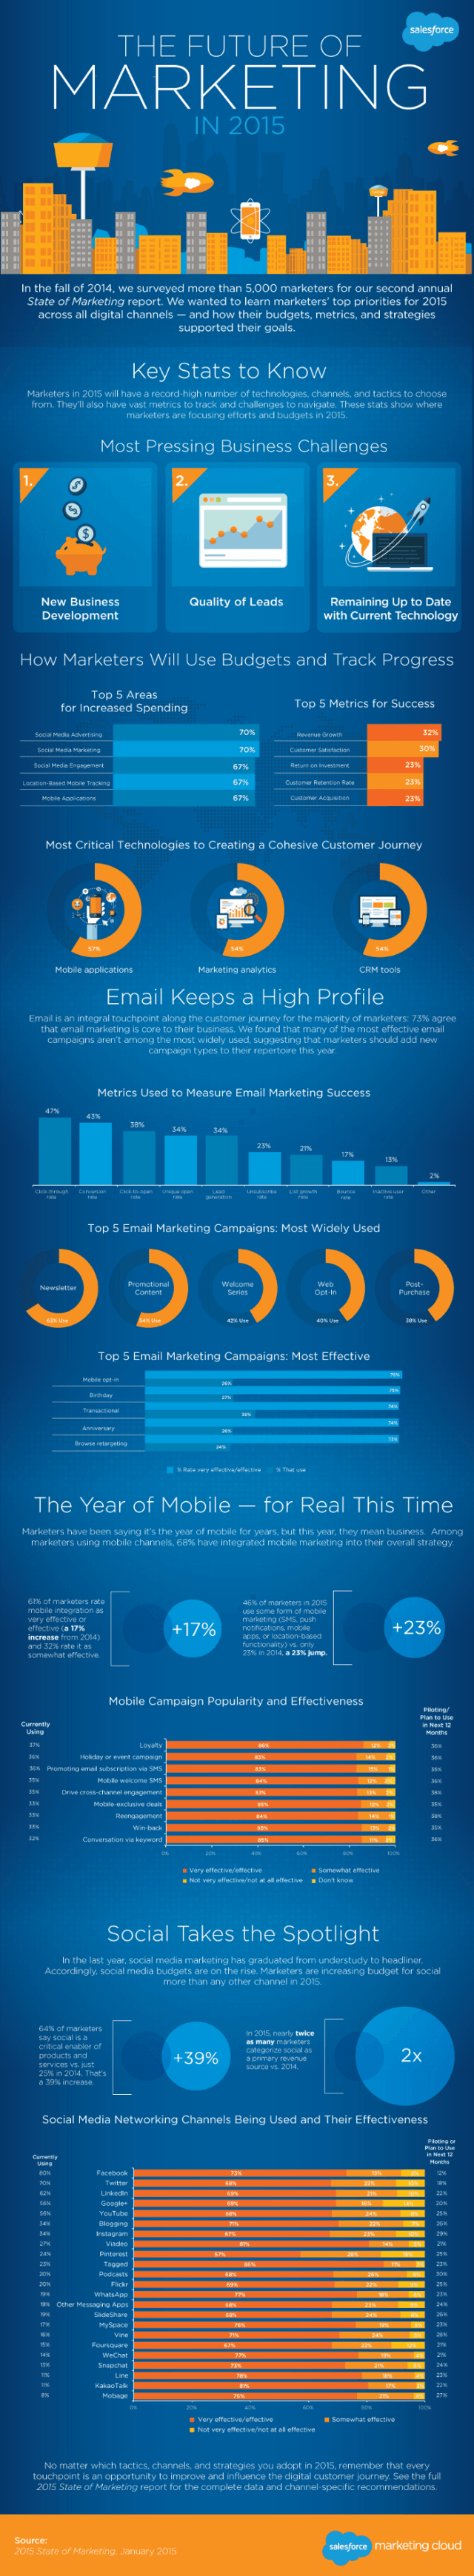 Future of Marketing 2015